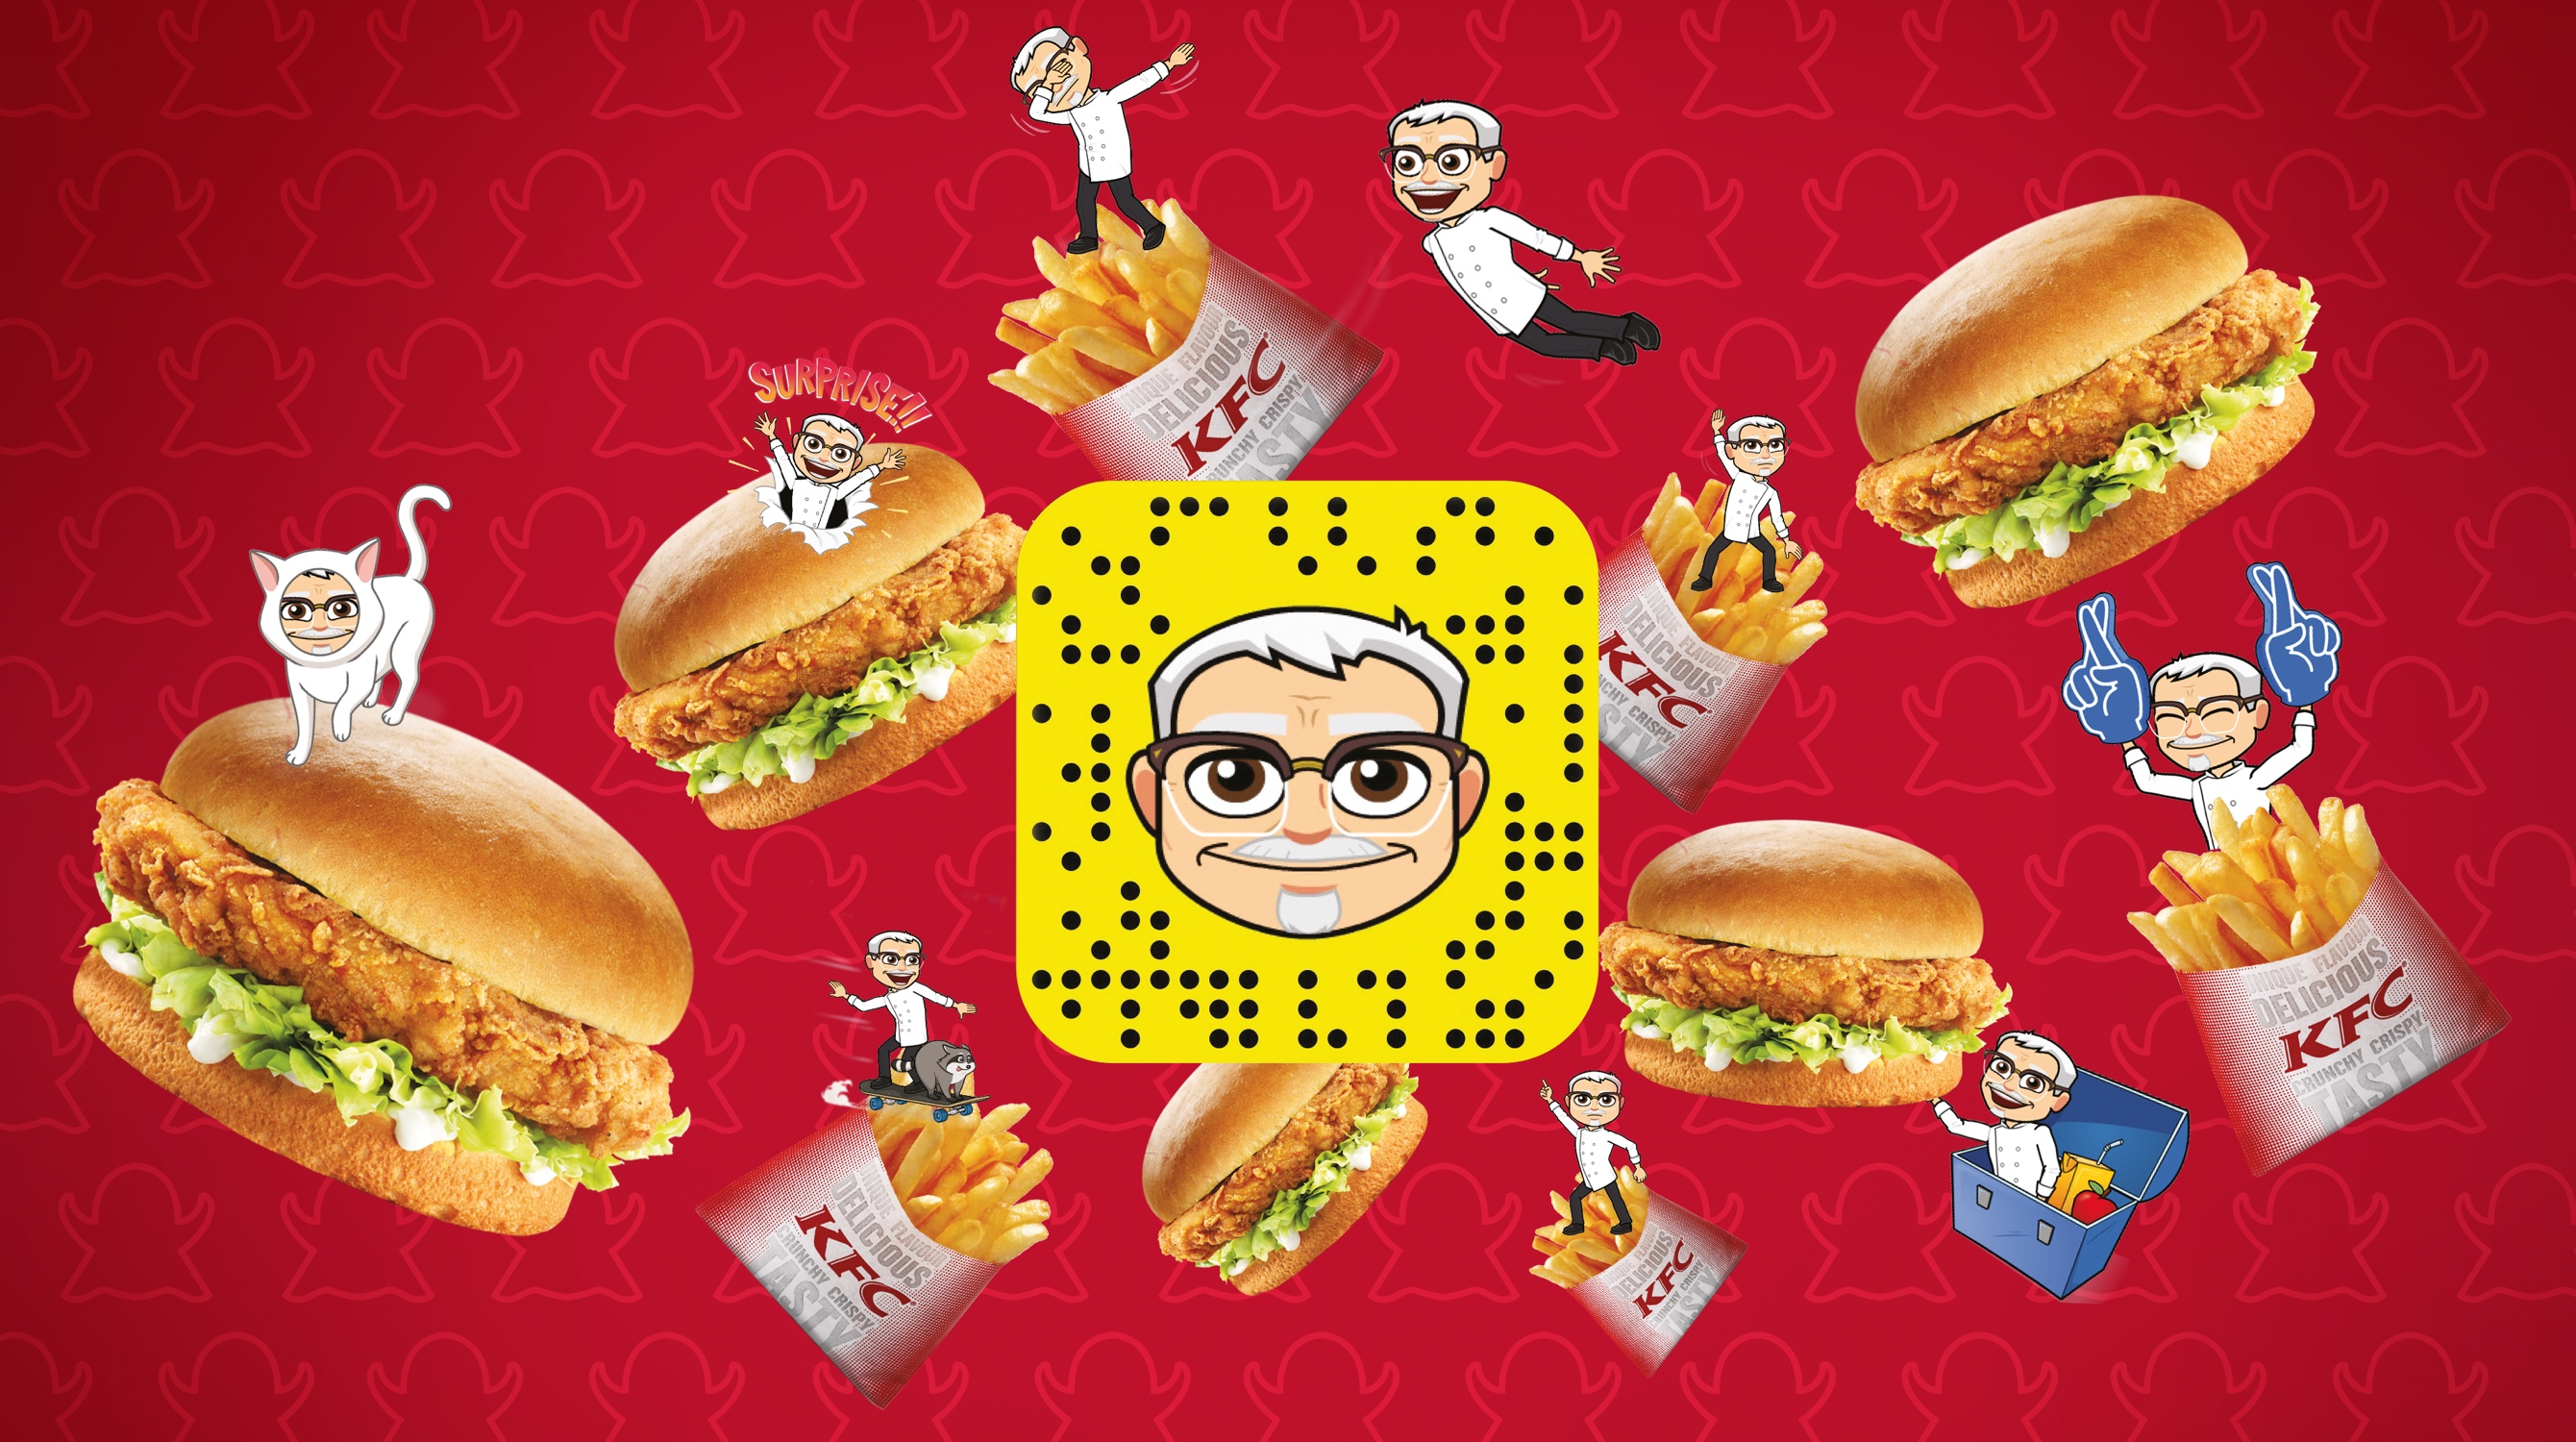 KFC: The Colonel on Snapchat